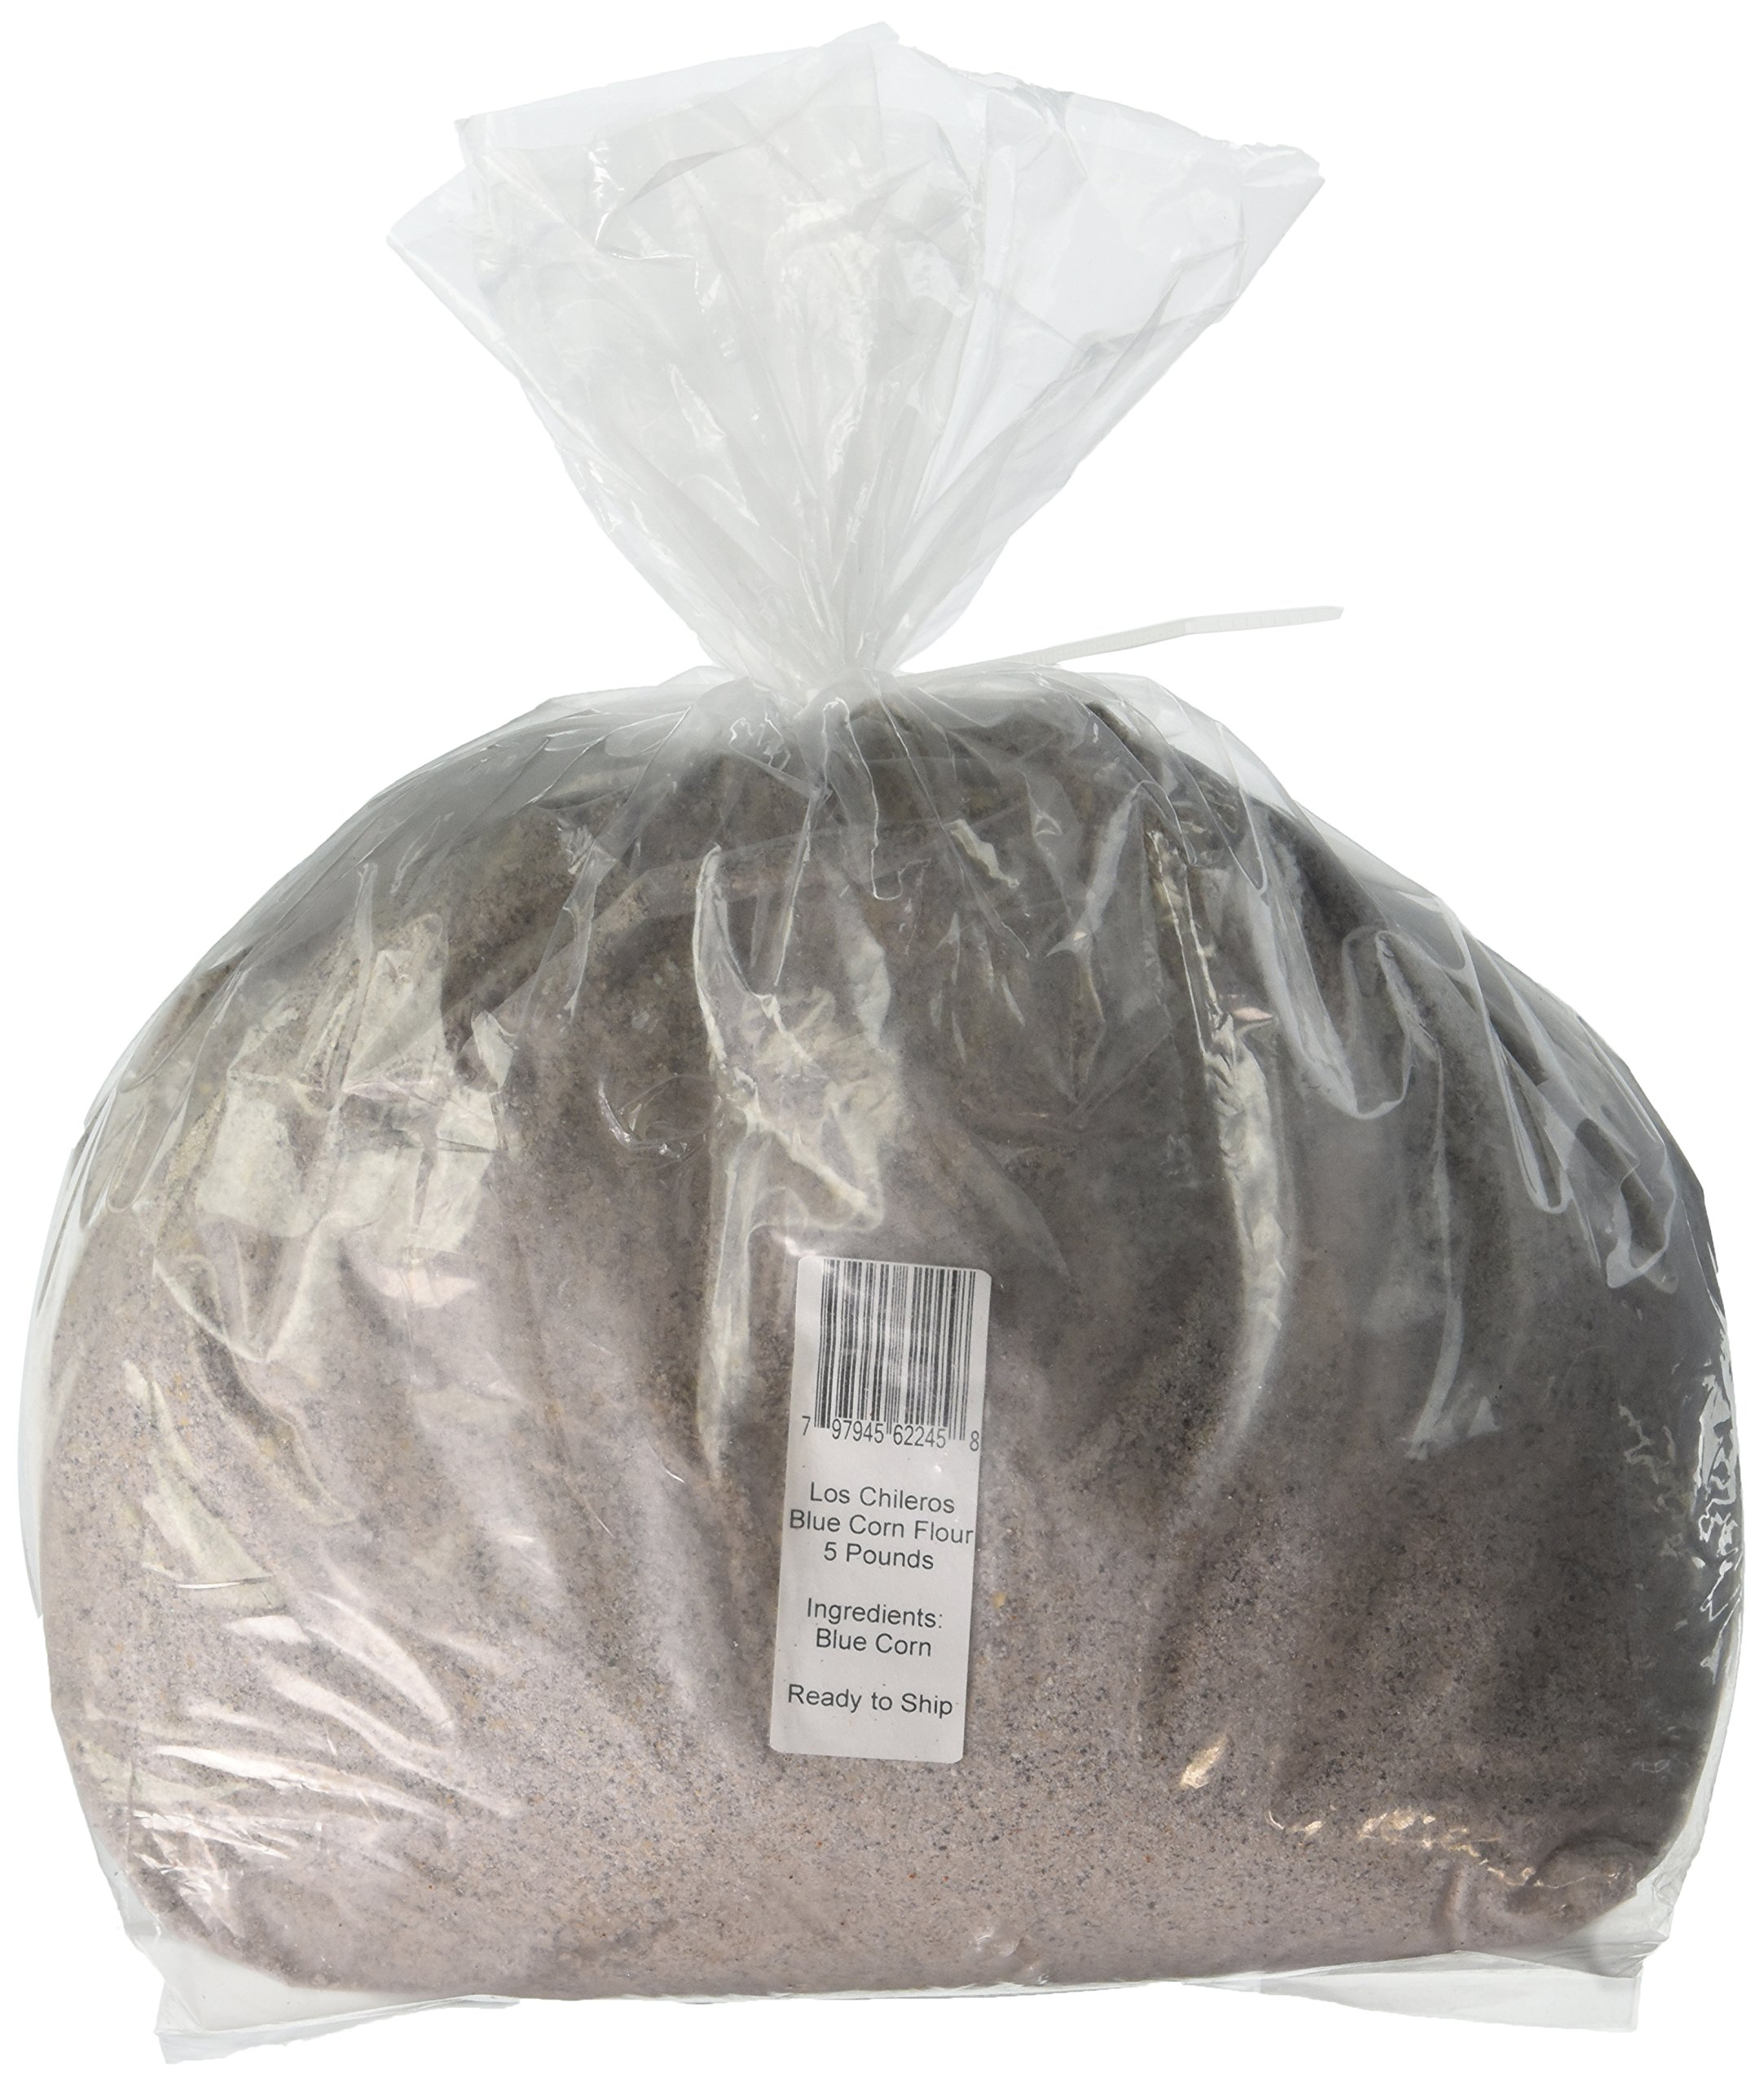 Los Chileros Blue Corn Flour, 5 Pound